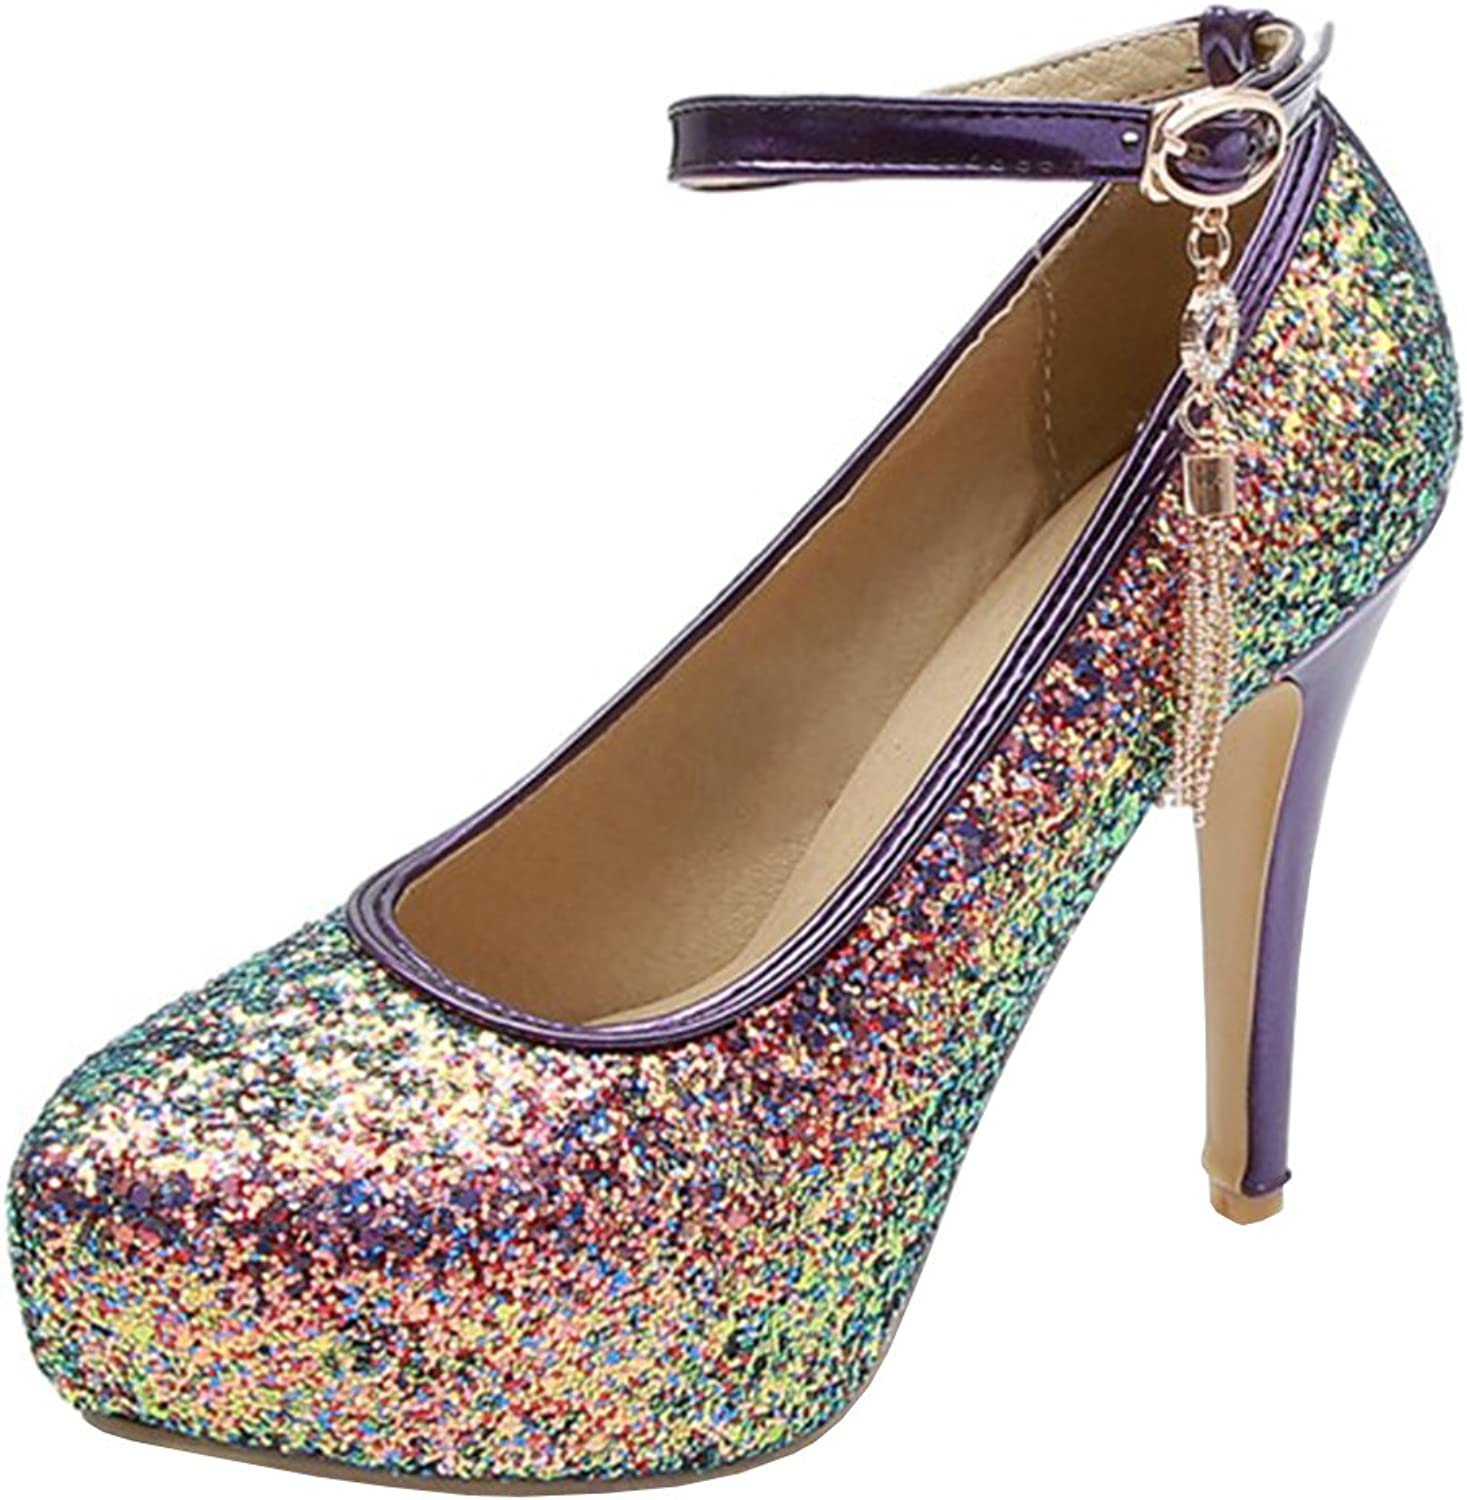 Atyche Women's High Heels Mary Janes Ankle Strap Pumps Glitter Platform Stiletto Evening Party shoes